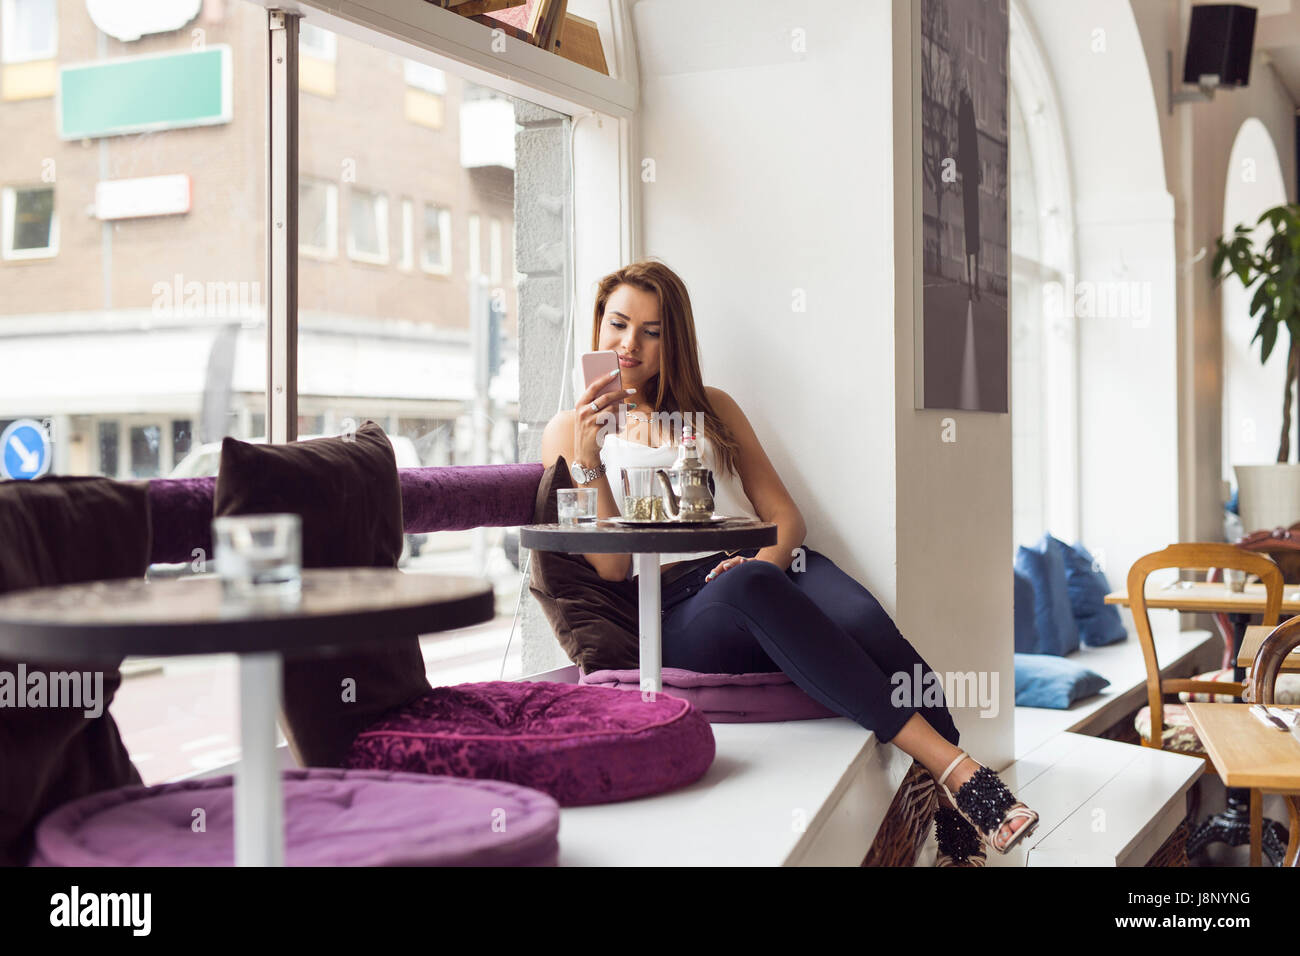 Businesswoman using mobile phone in restaurant Banque D'Images